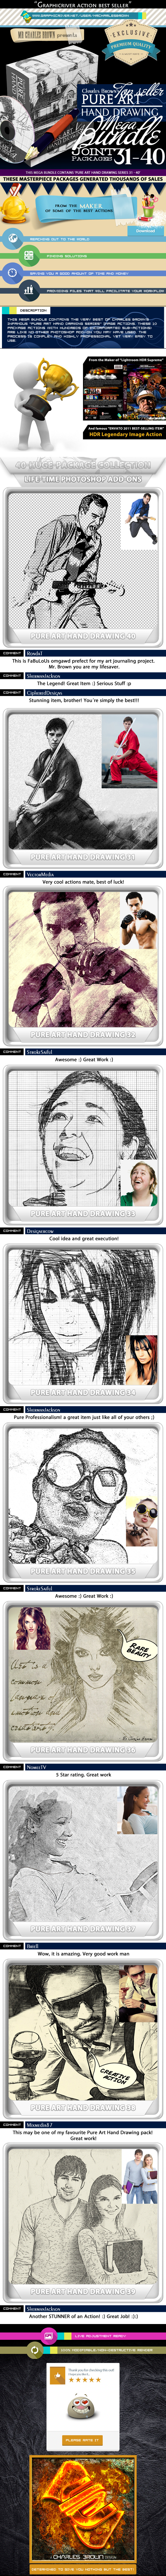 All Charles Brown's Pure Art Hand Drawing Bundle 4 - Photo Effects Actions